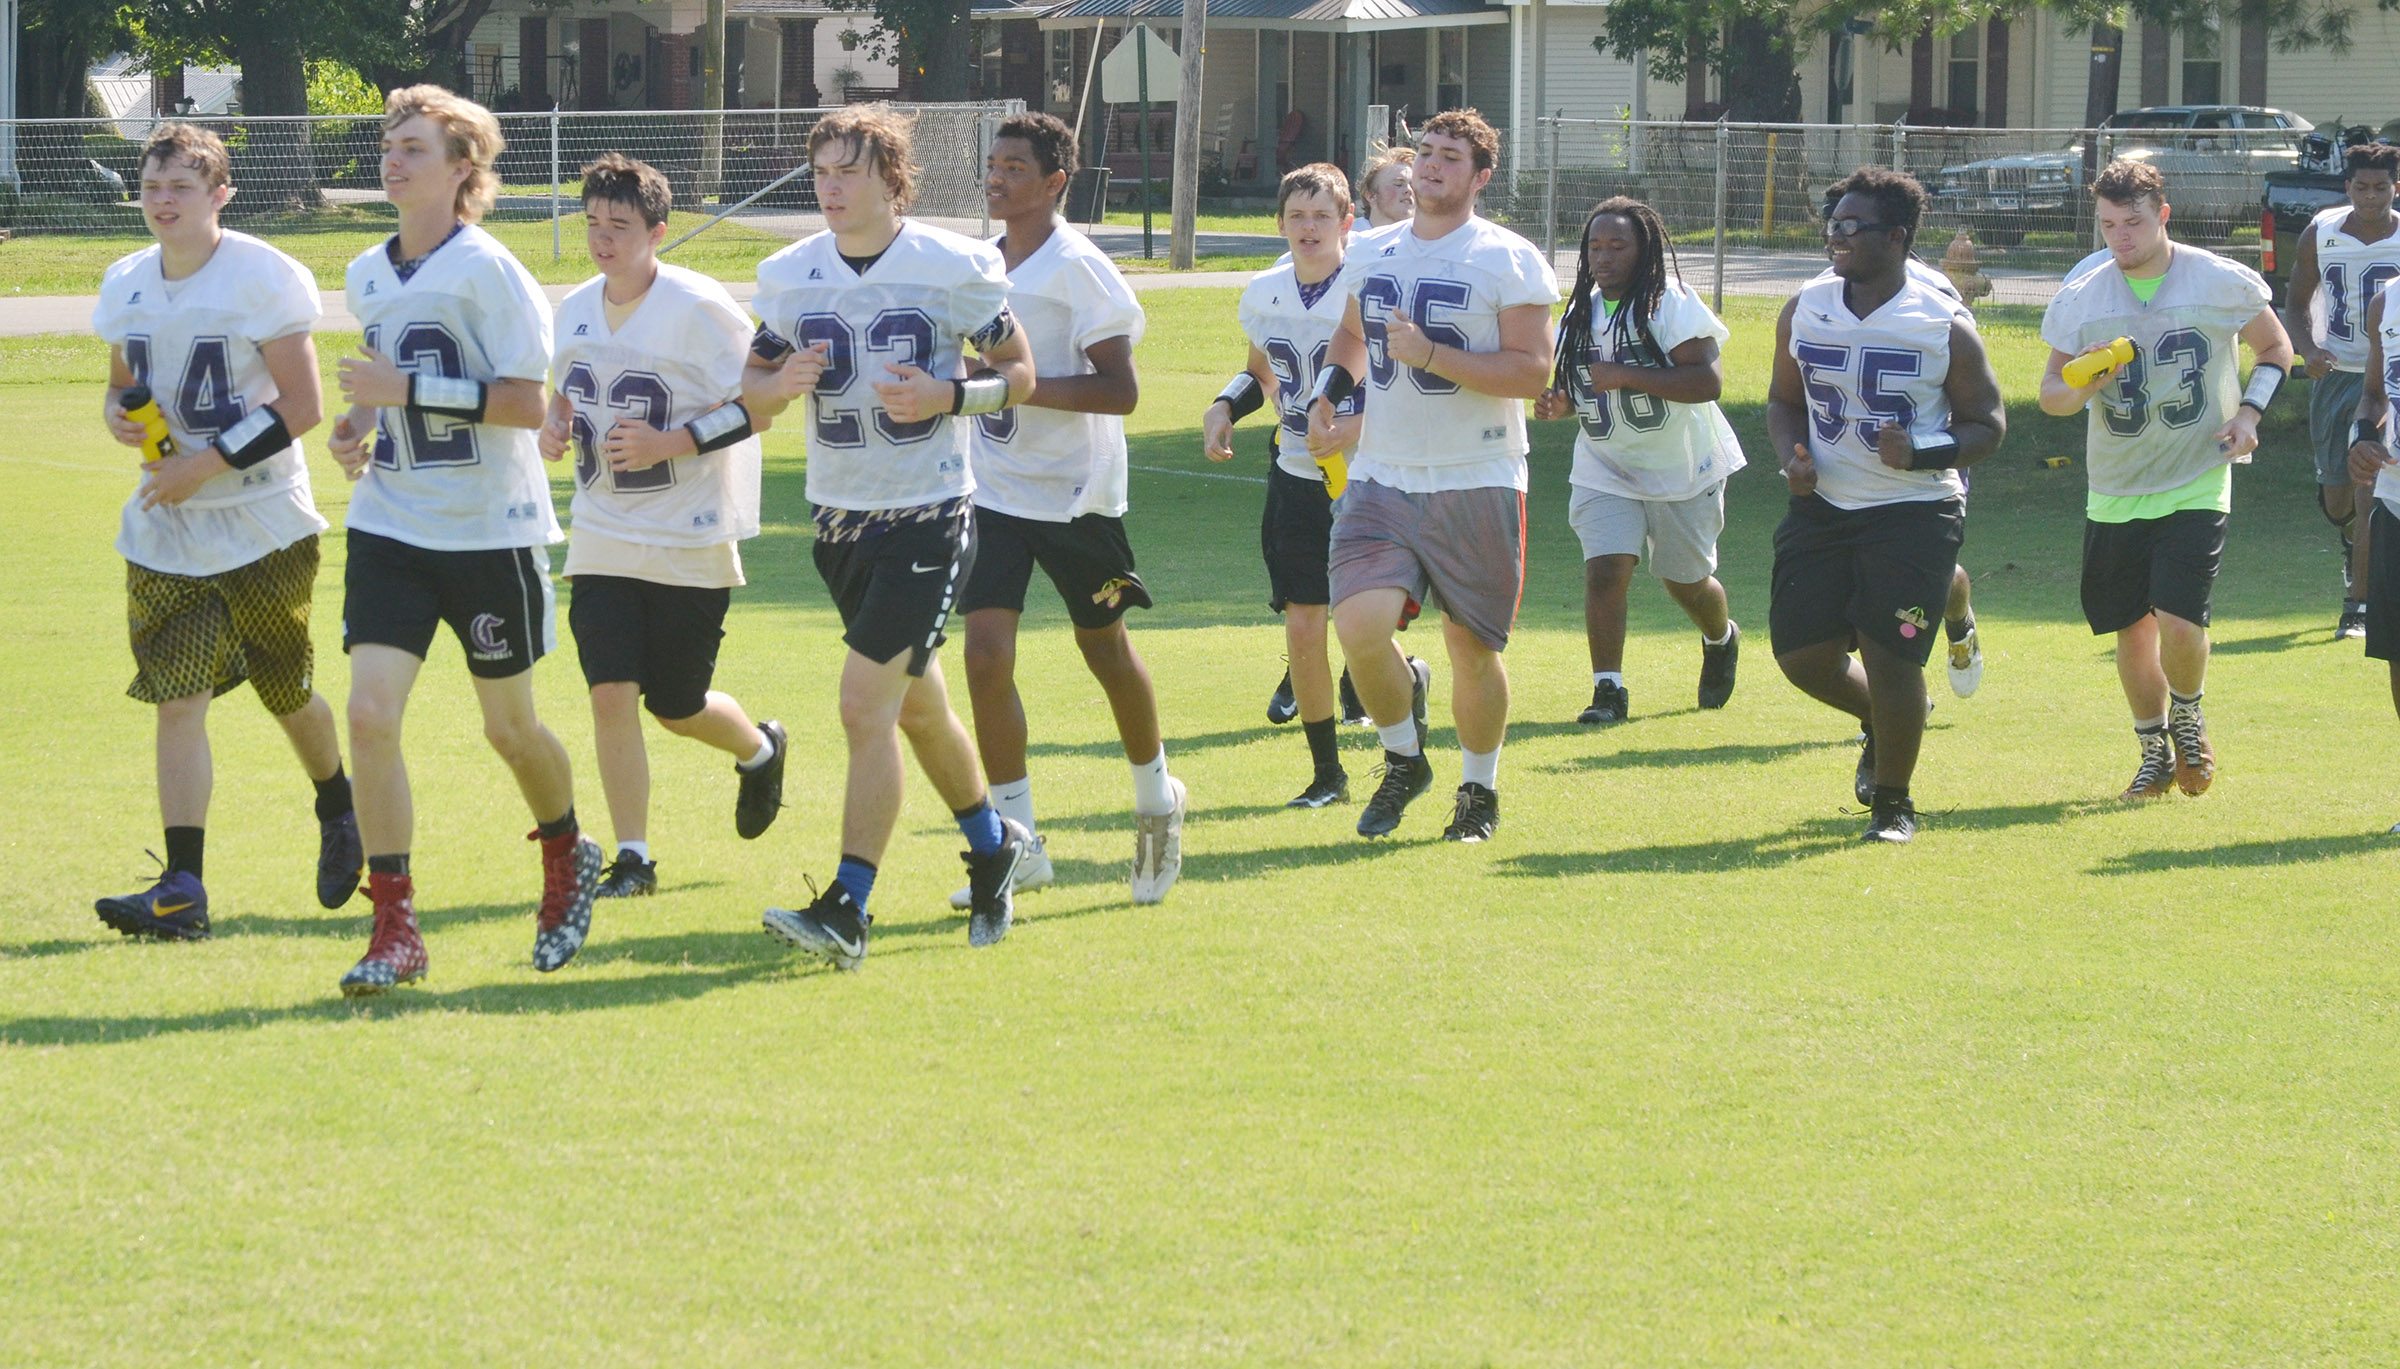 CHS football players run during practice.